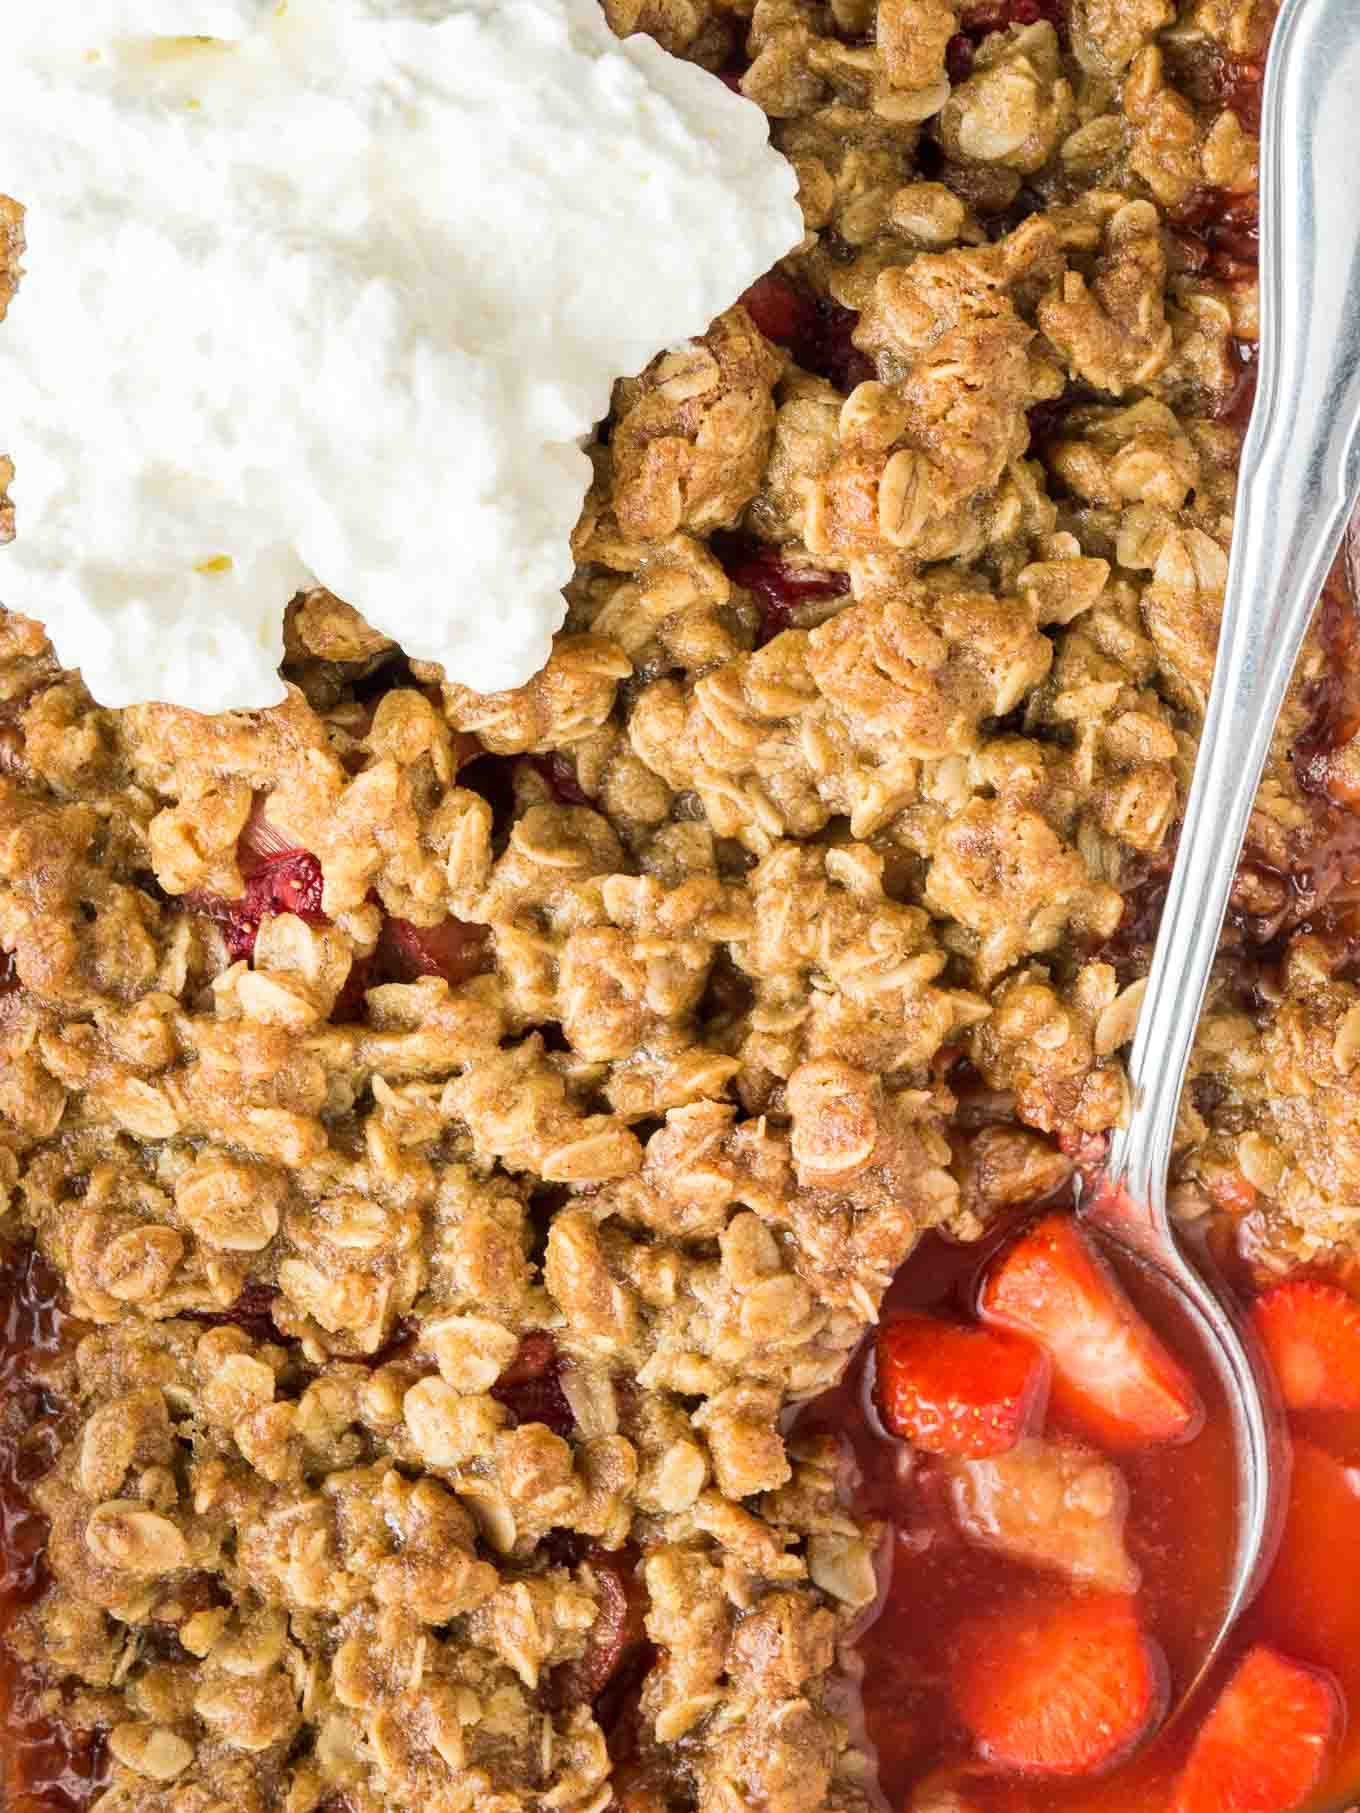 This easy Strawberry Rhubarb Crisp is the perfect summer dessert! Easier to make than pie and prepped in just minutes.